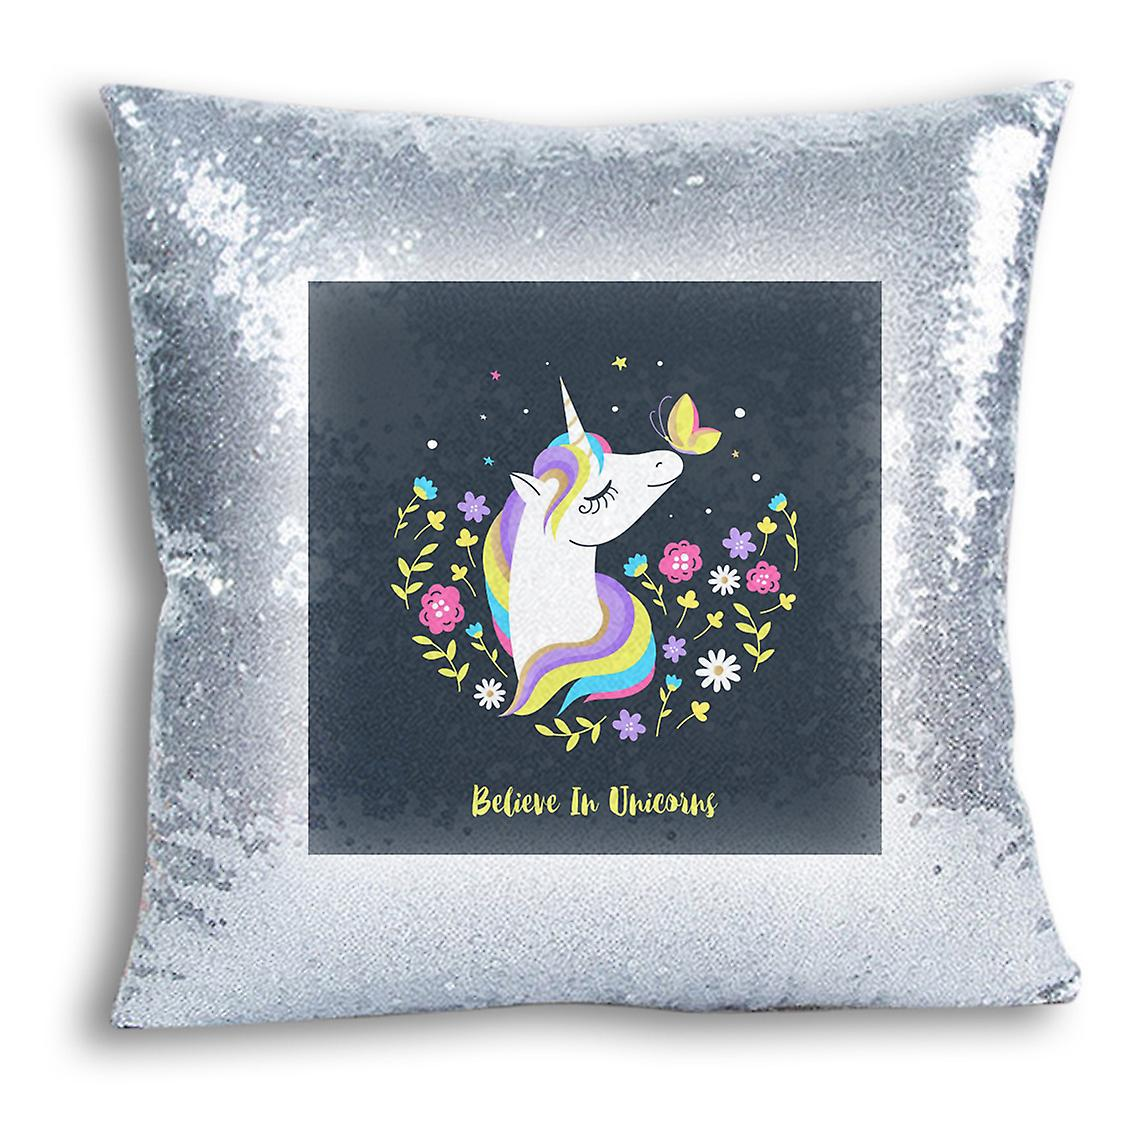 Inserted Decor Silver 14 Cover I Home With tronixsUnicorn Sequin CushionPillow Design For Printed 7yvYbgIf6m